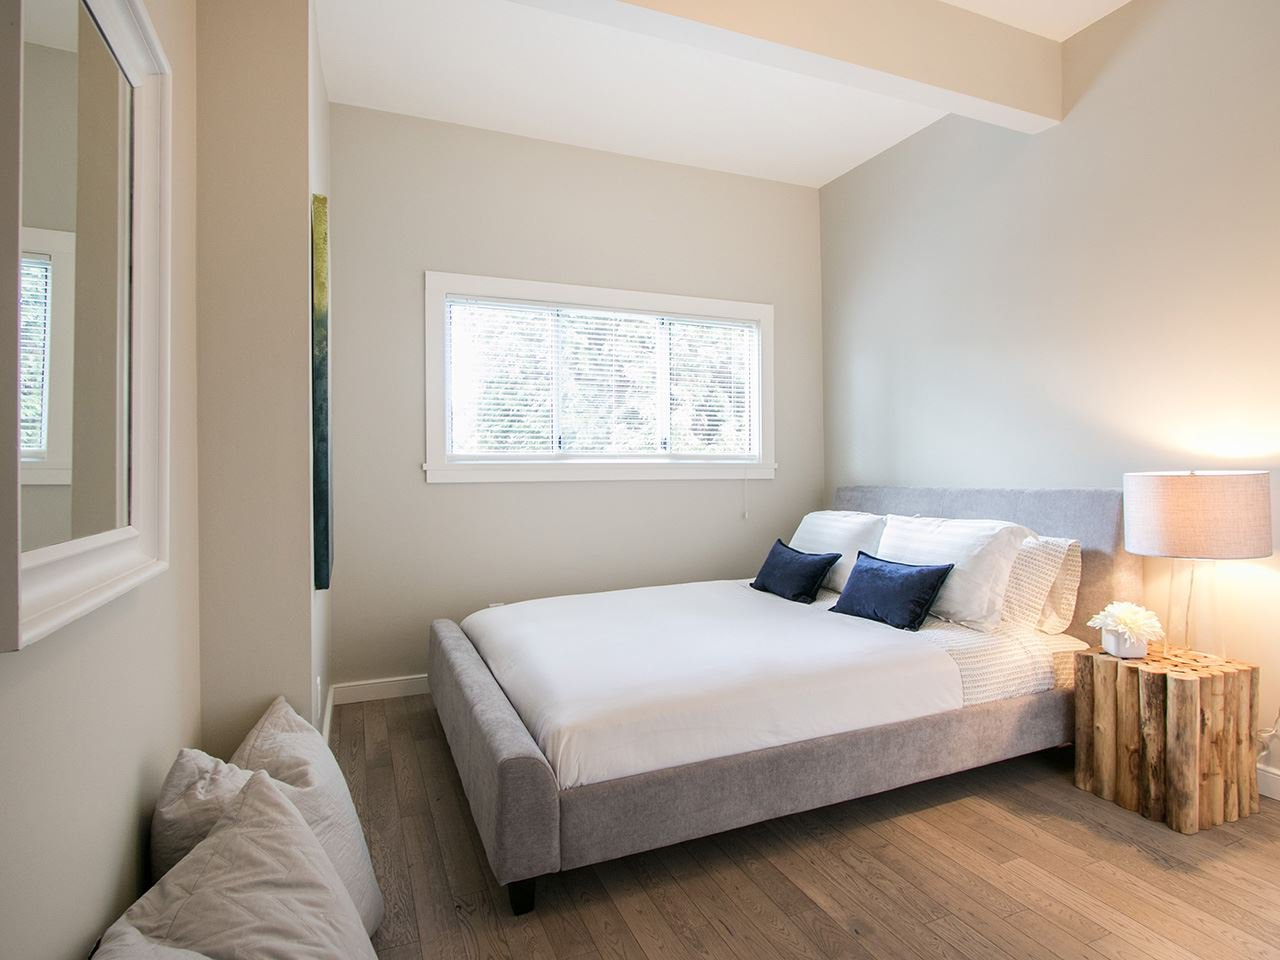 Photo 15: Photos: 158 E 26TH Avenue in Vancouver: Main House for sale (Vancouver East)  : MLS®# R2042714